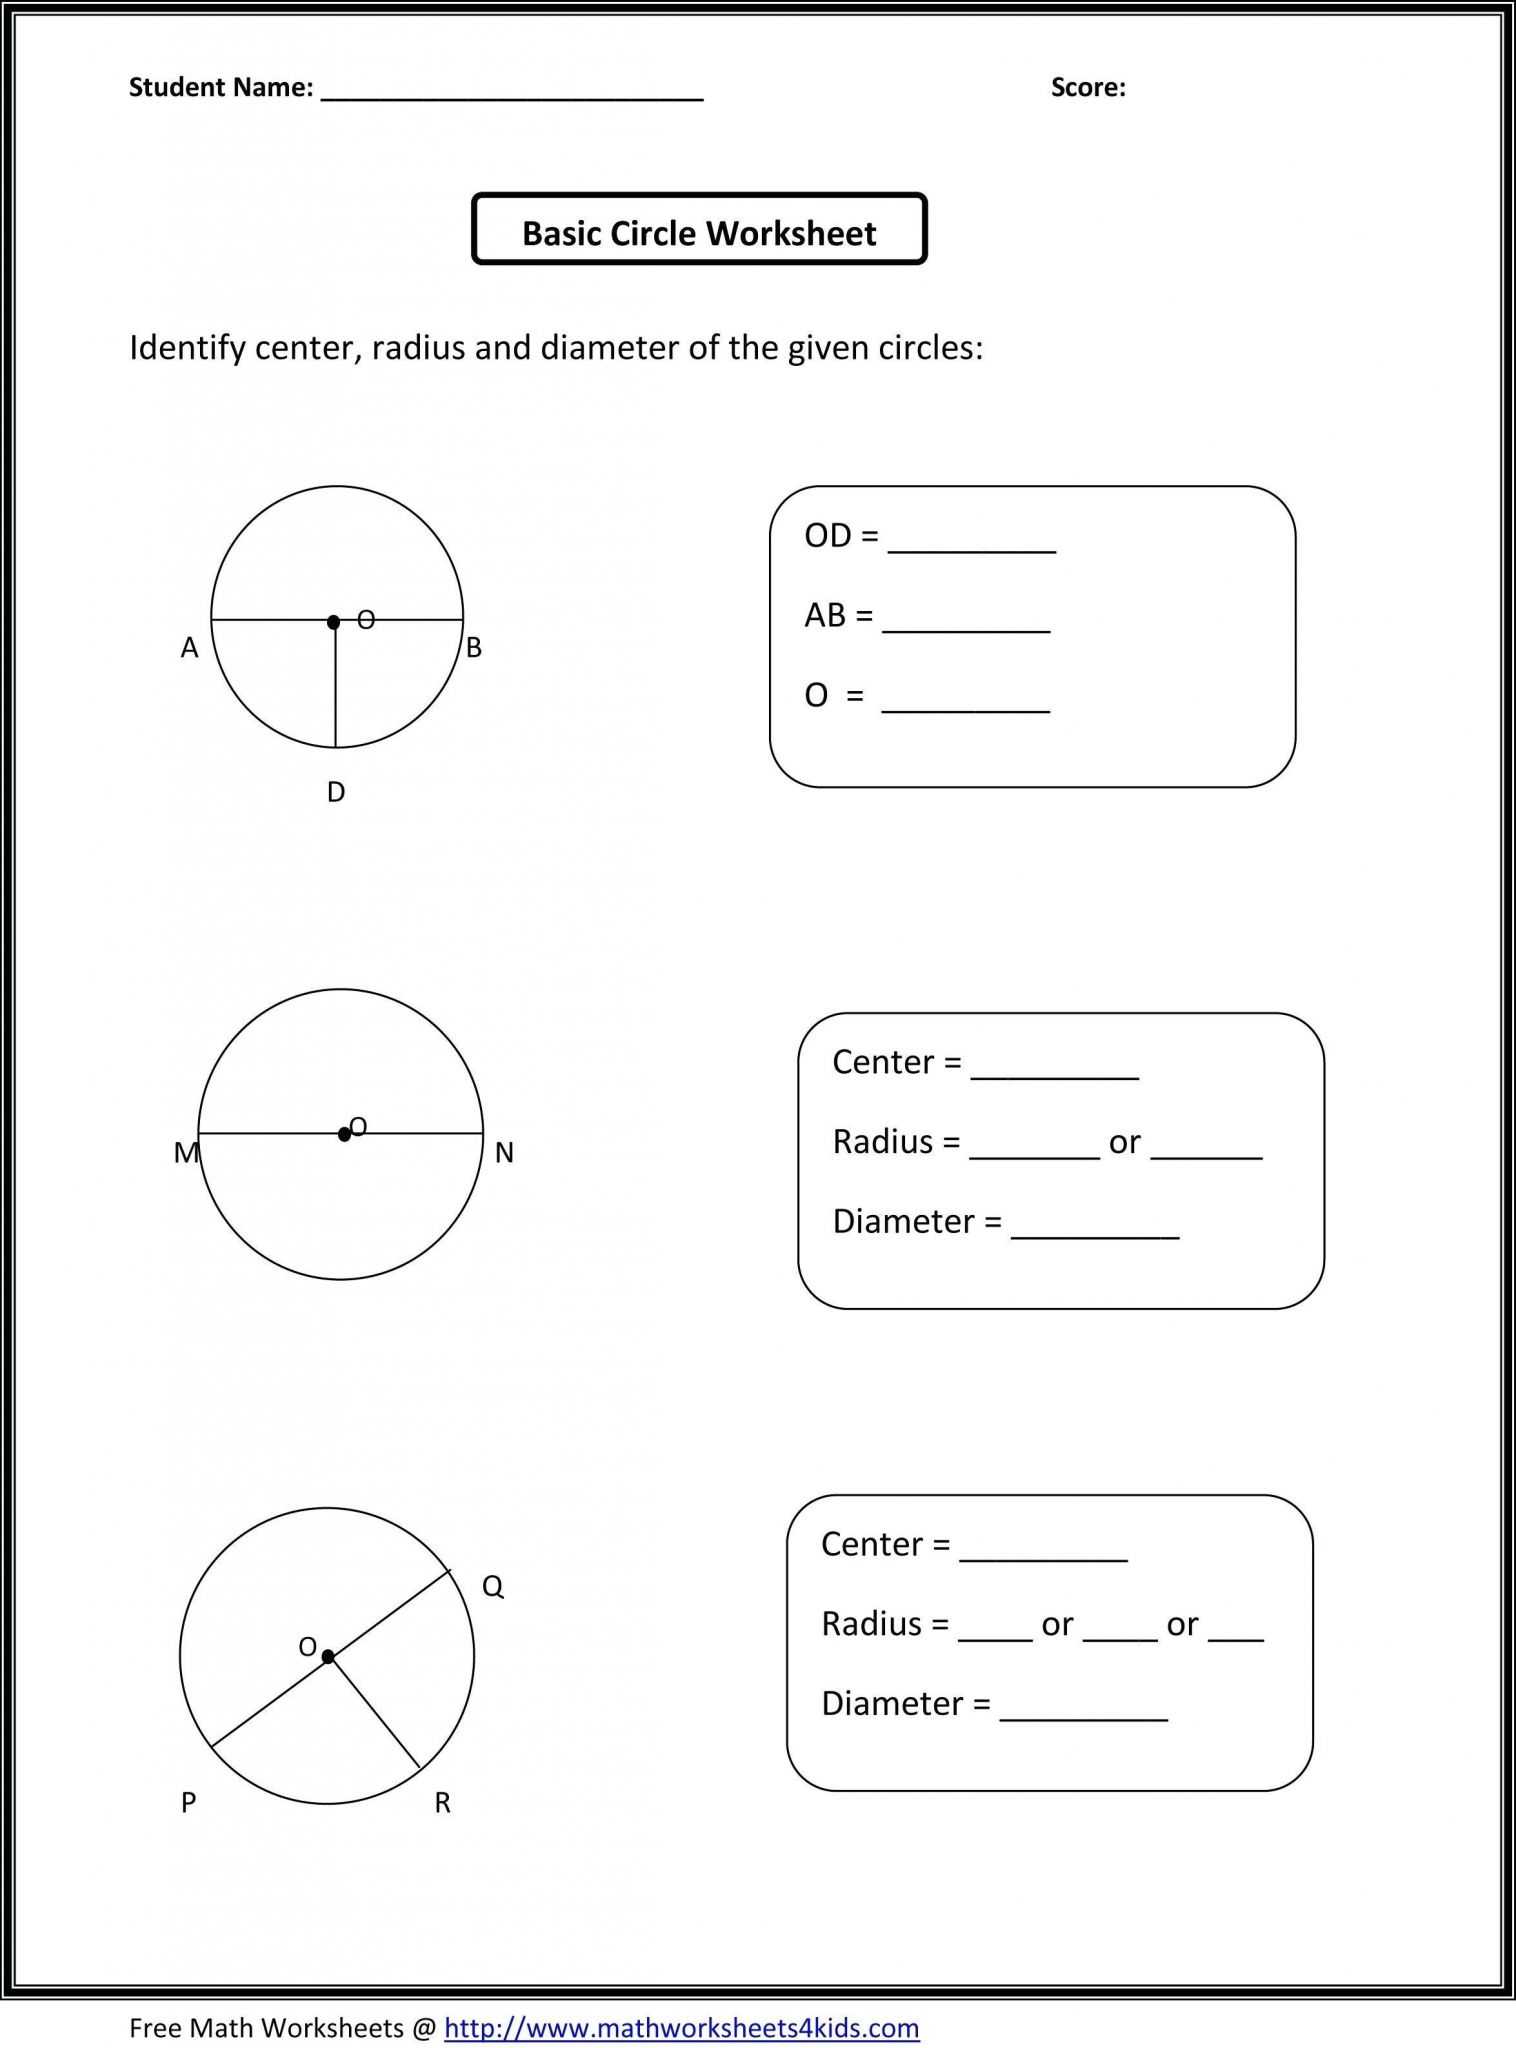 Factor Each Completely Worksheet Answers